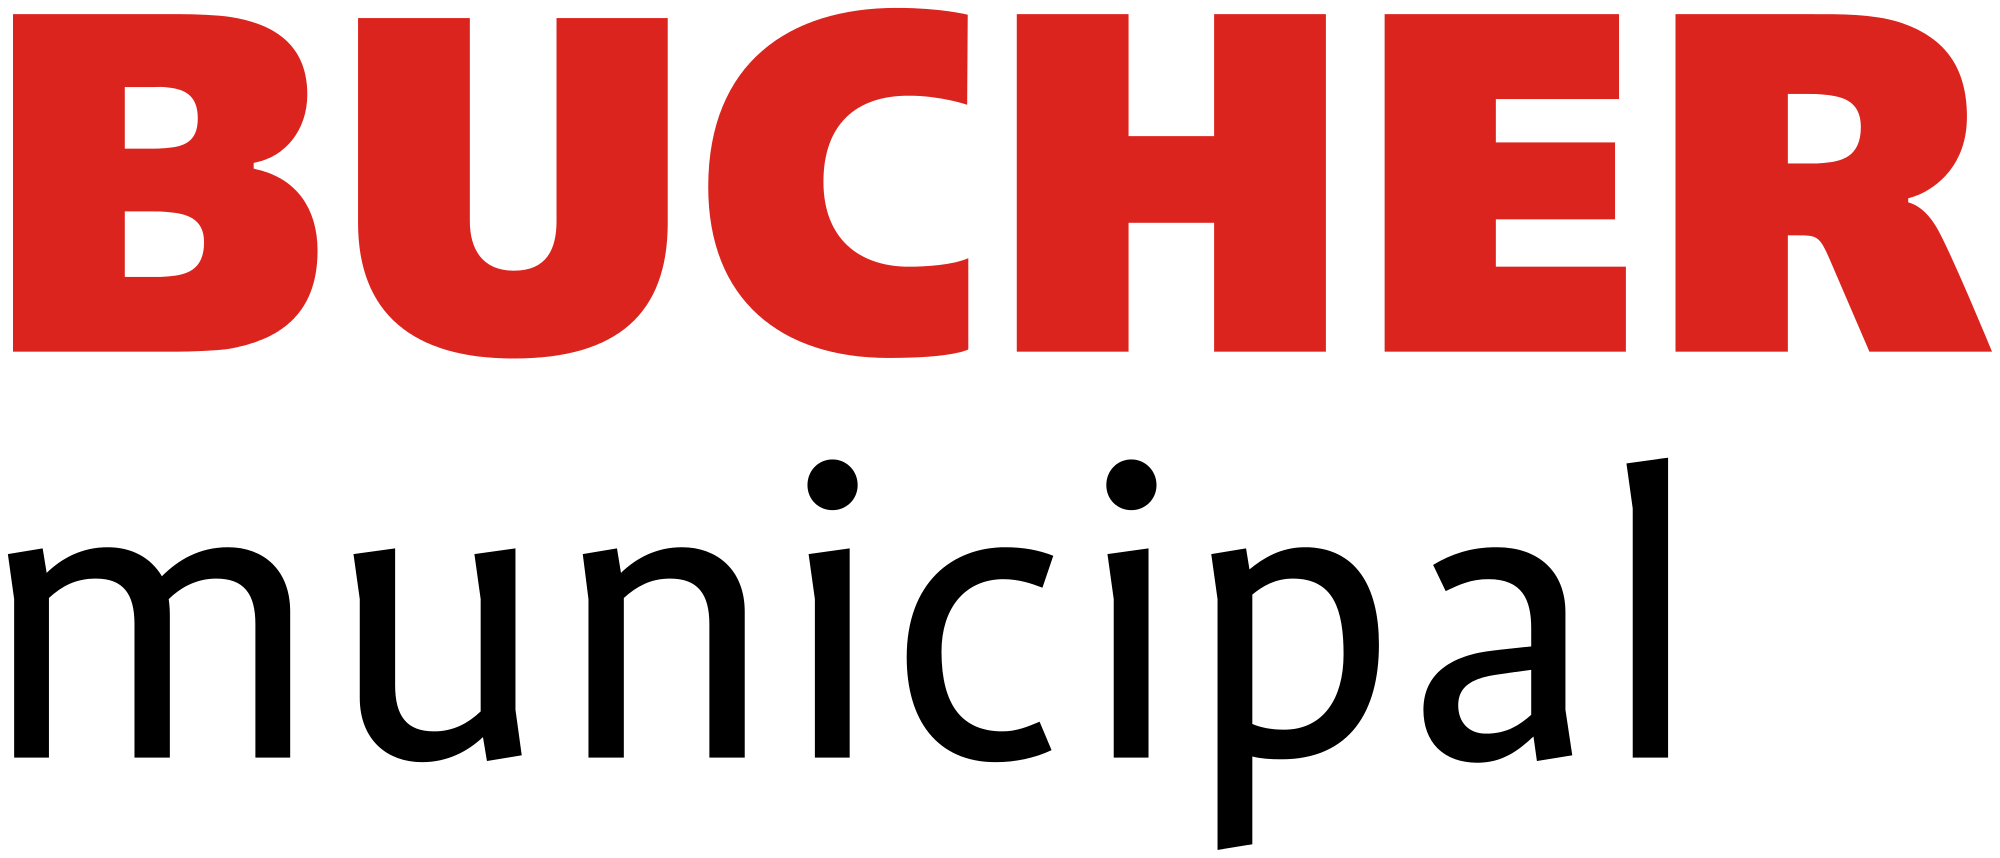 Bucher Municipal Limited.